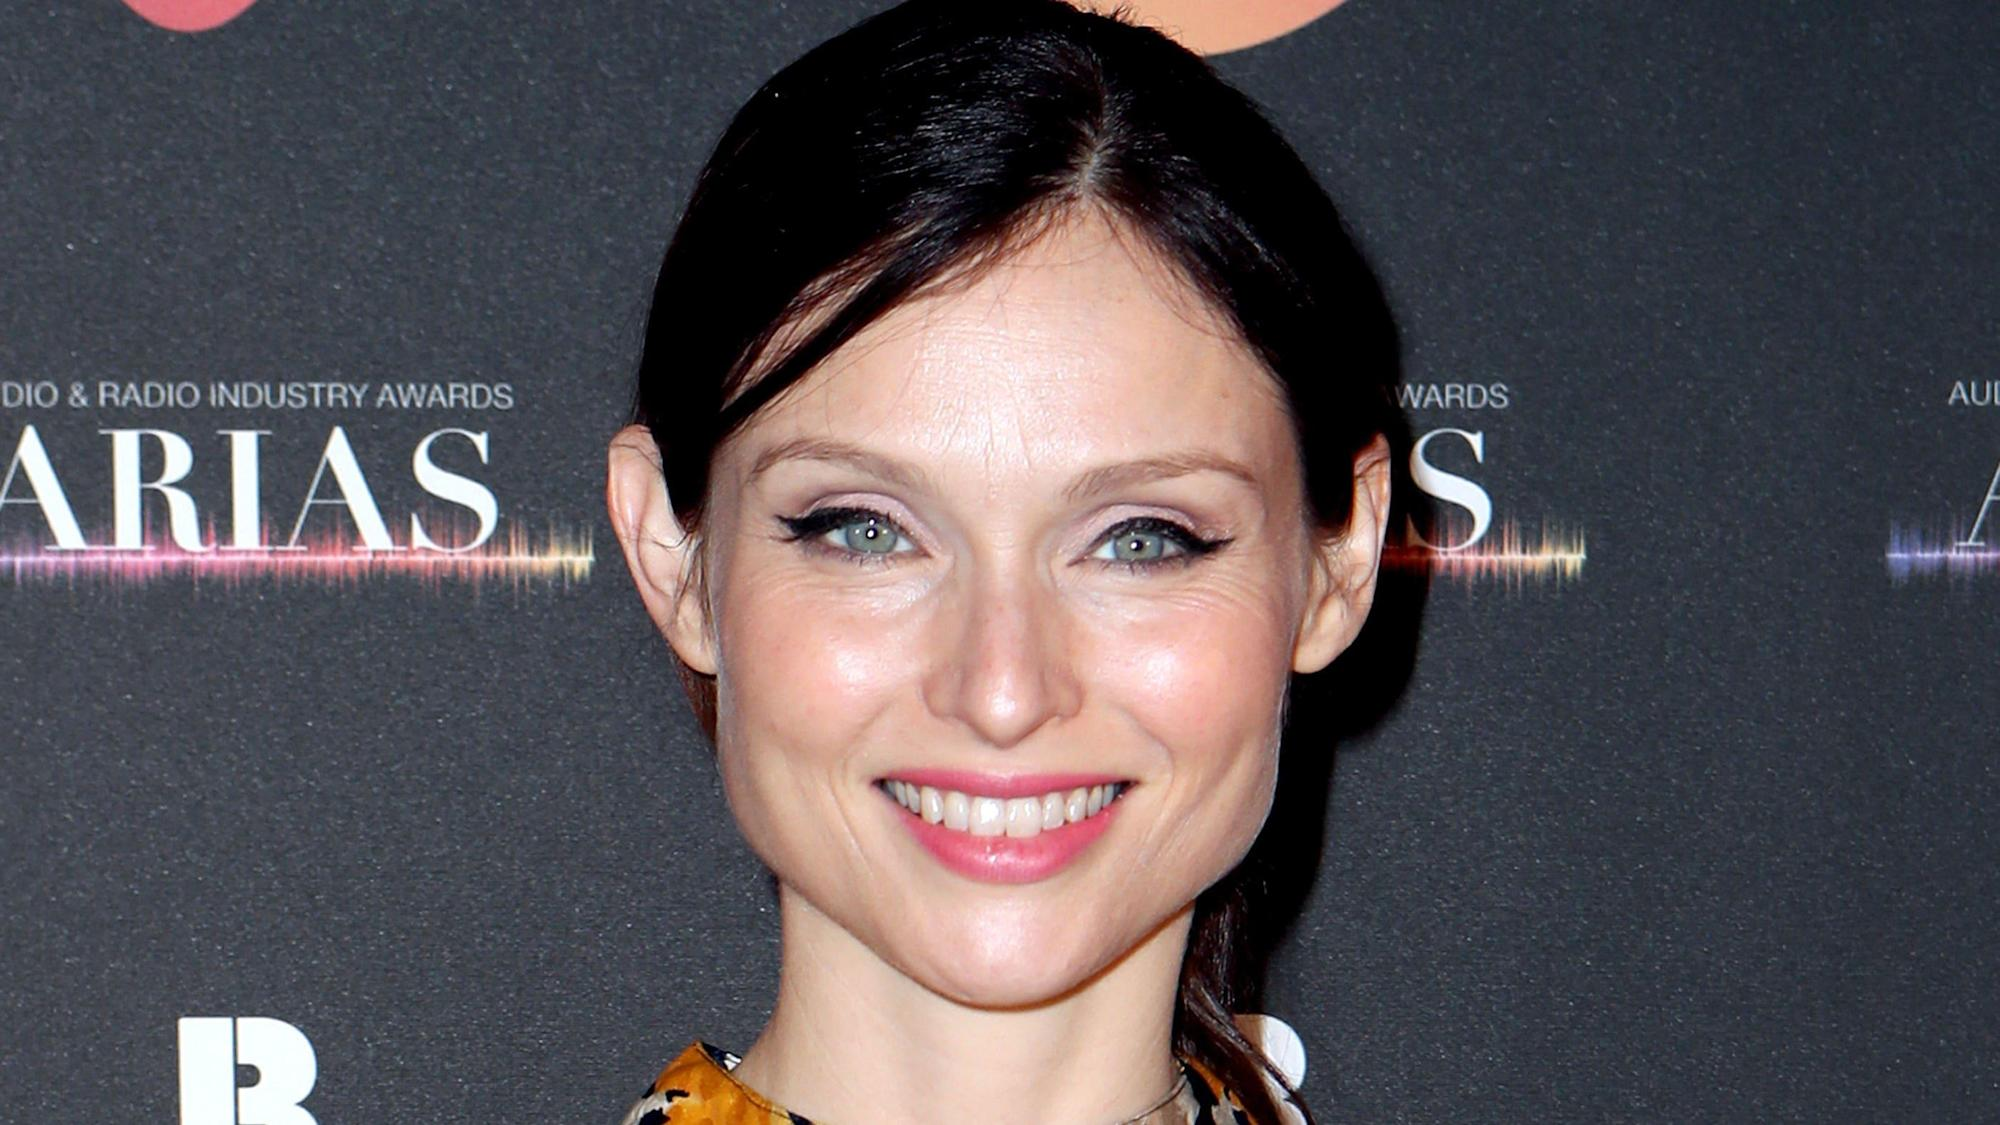 Sophie Ellis-Bextor 'unsettled' after being bombarded with gifts, court told